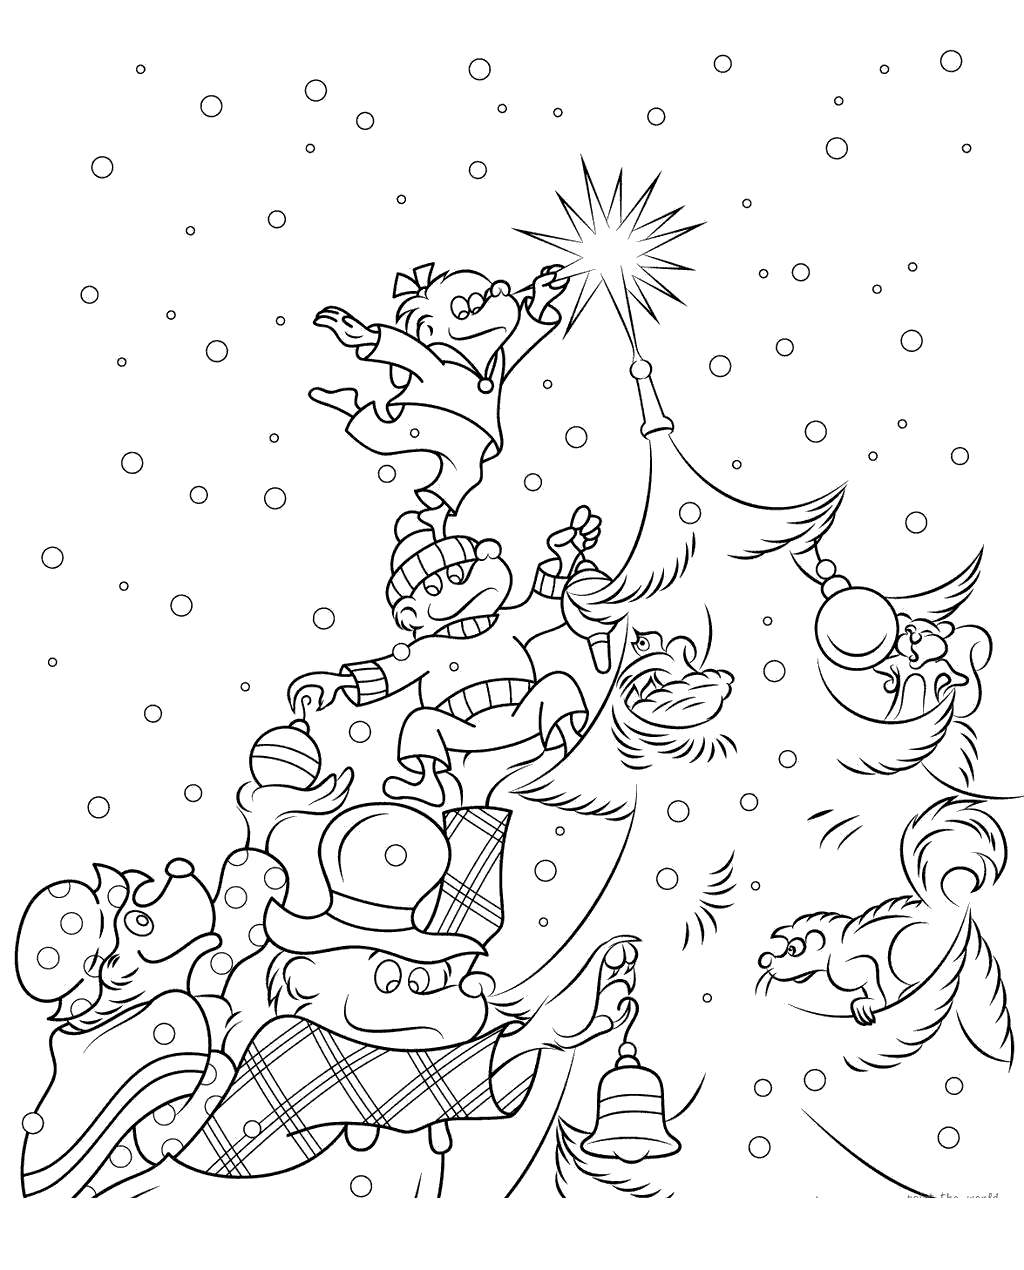 Berenstain Bears Coloring Pages Christmas Tree Free Printable